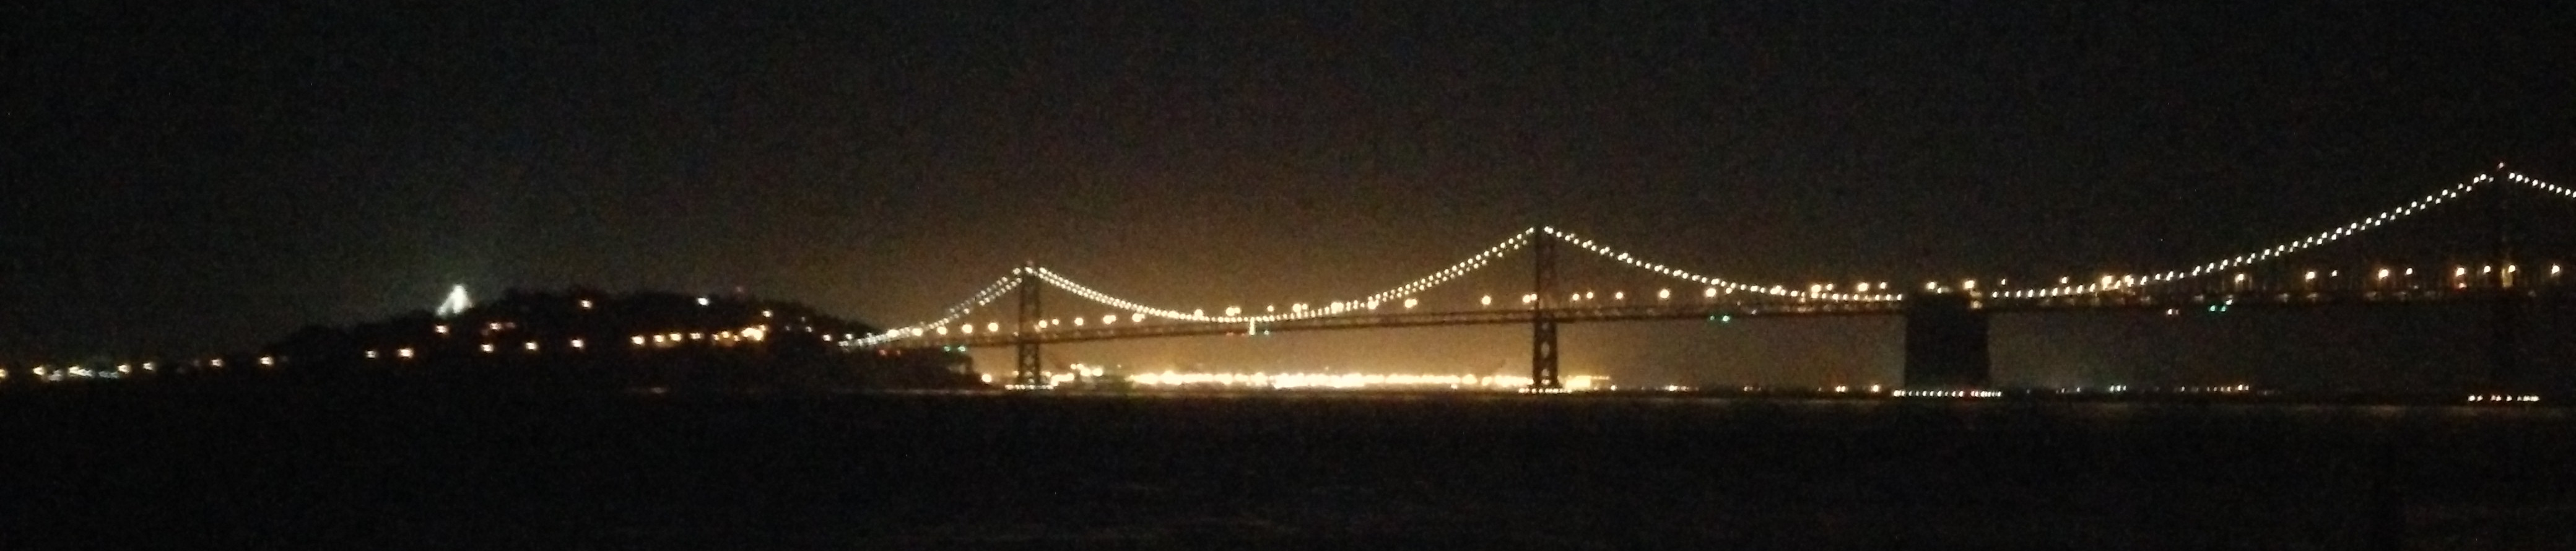 Bridge at Night from Alcatraz